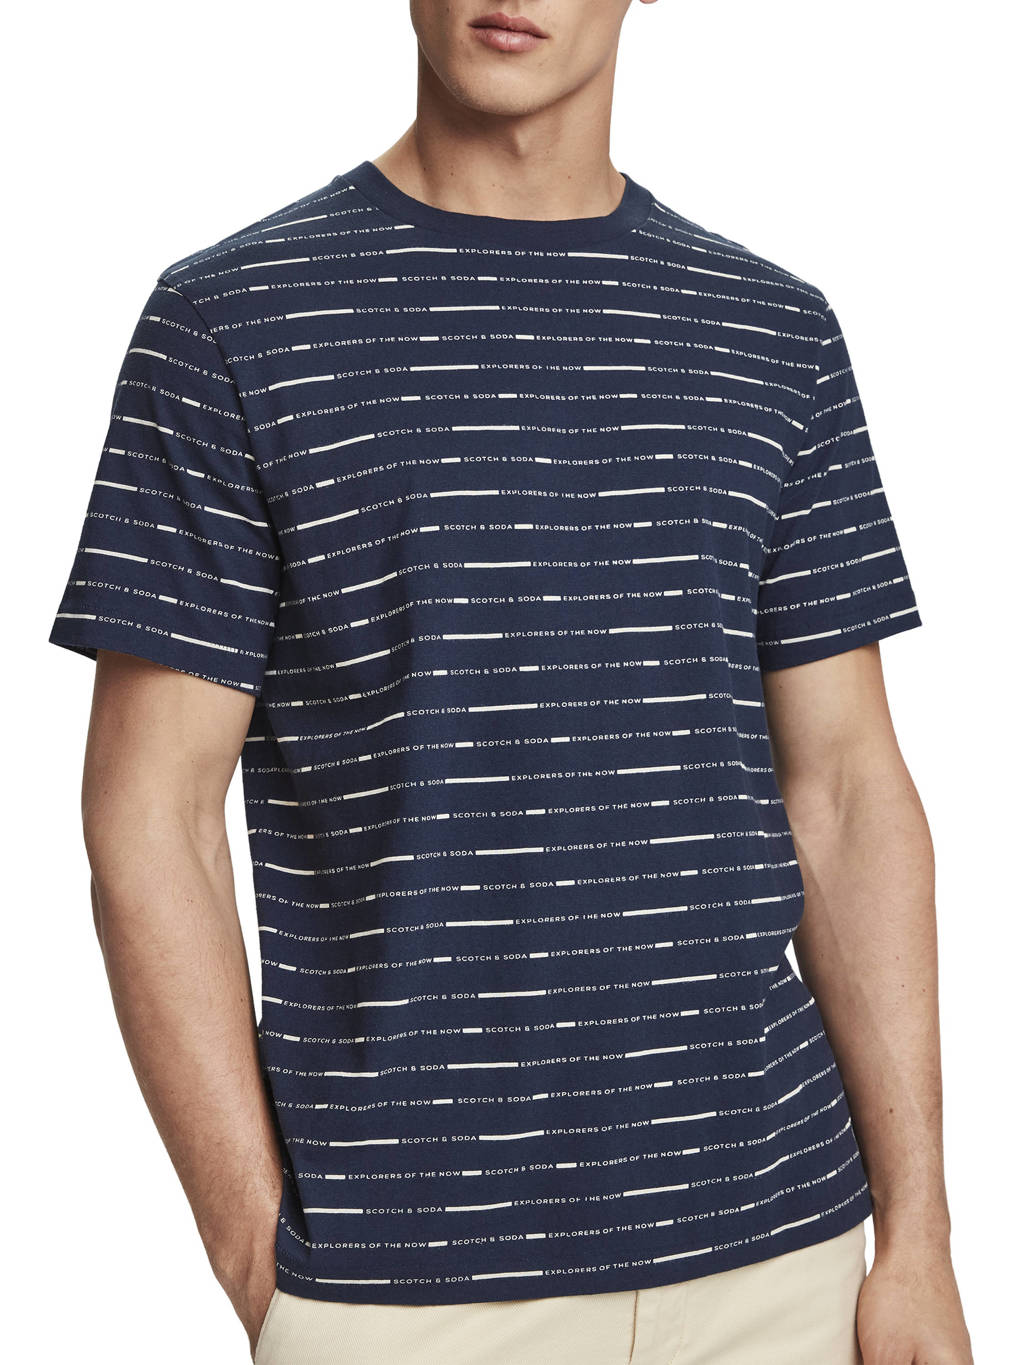 Scotch & Soda T-shirt met all over print donkerblauw, Donkerblauw